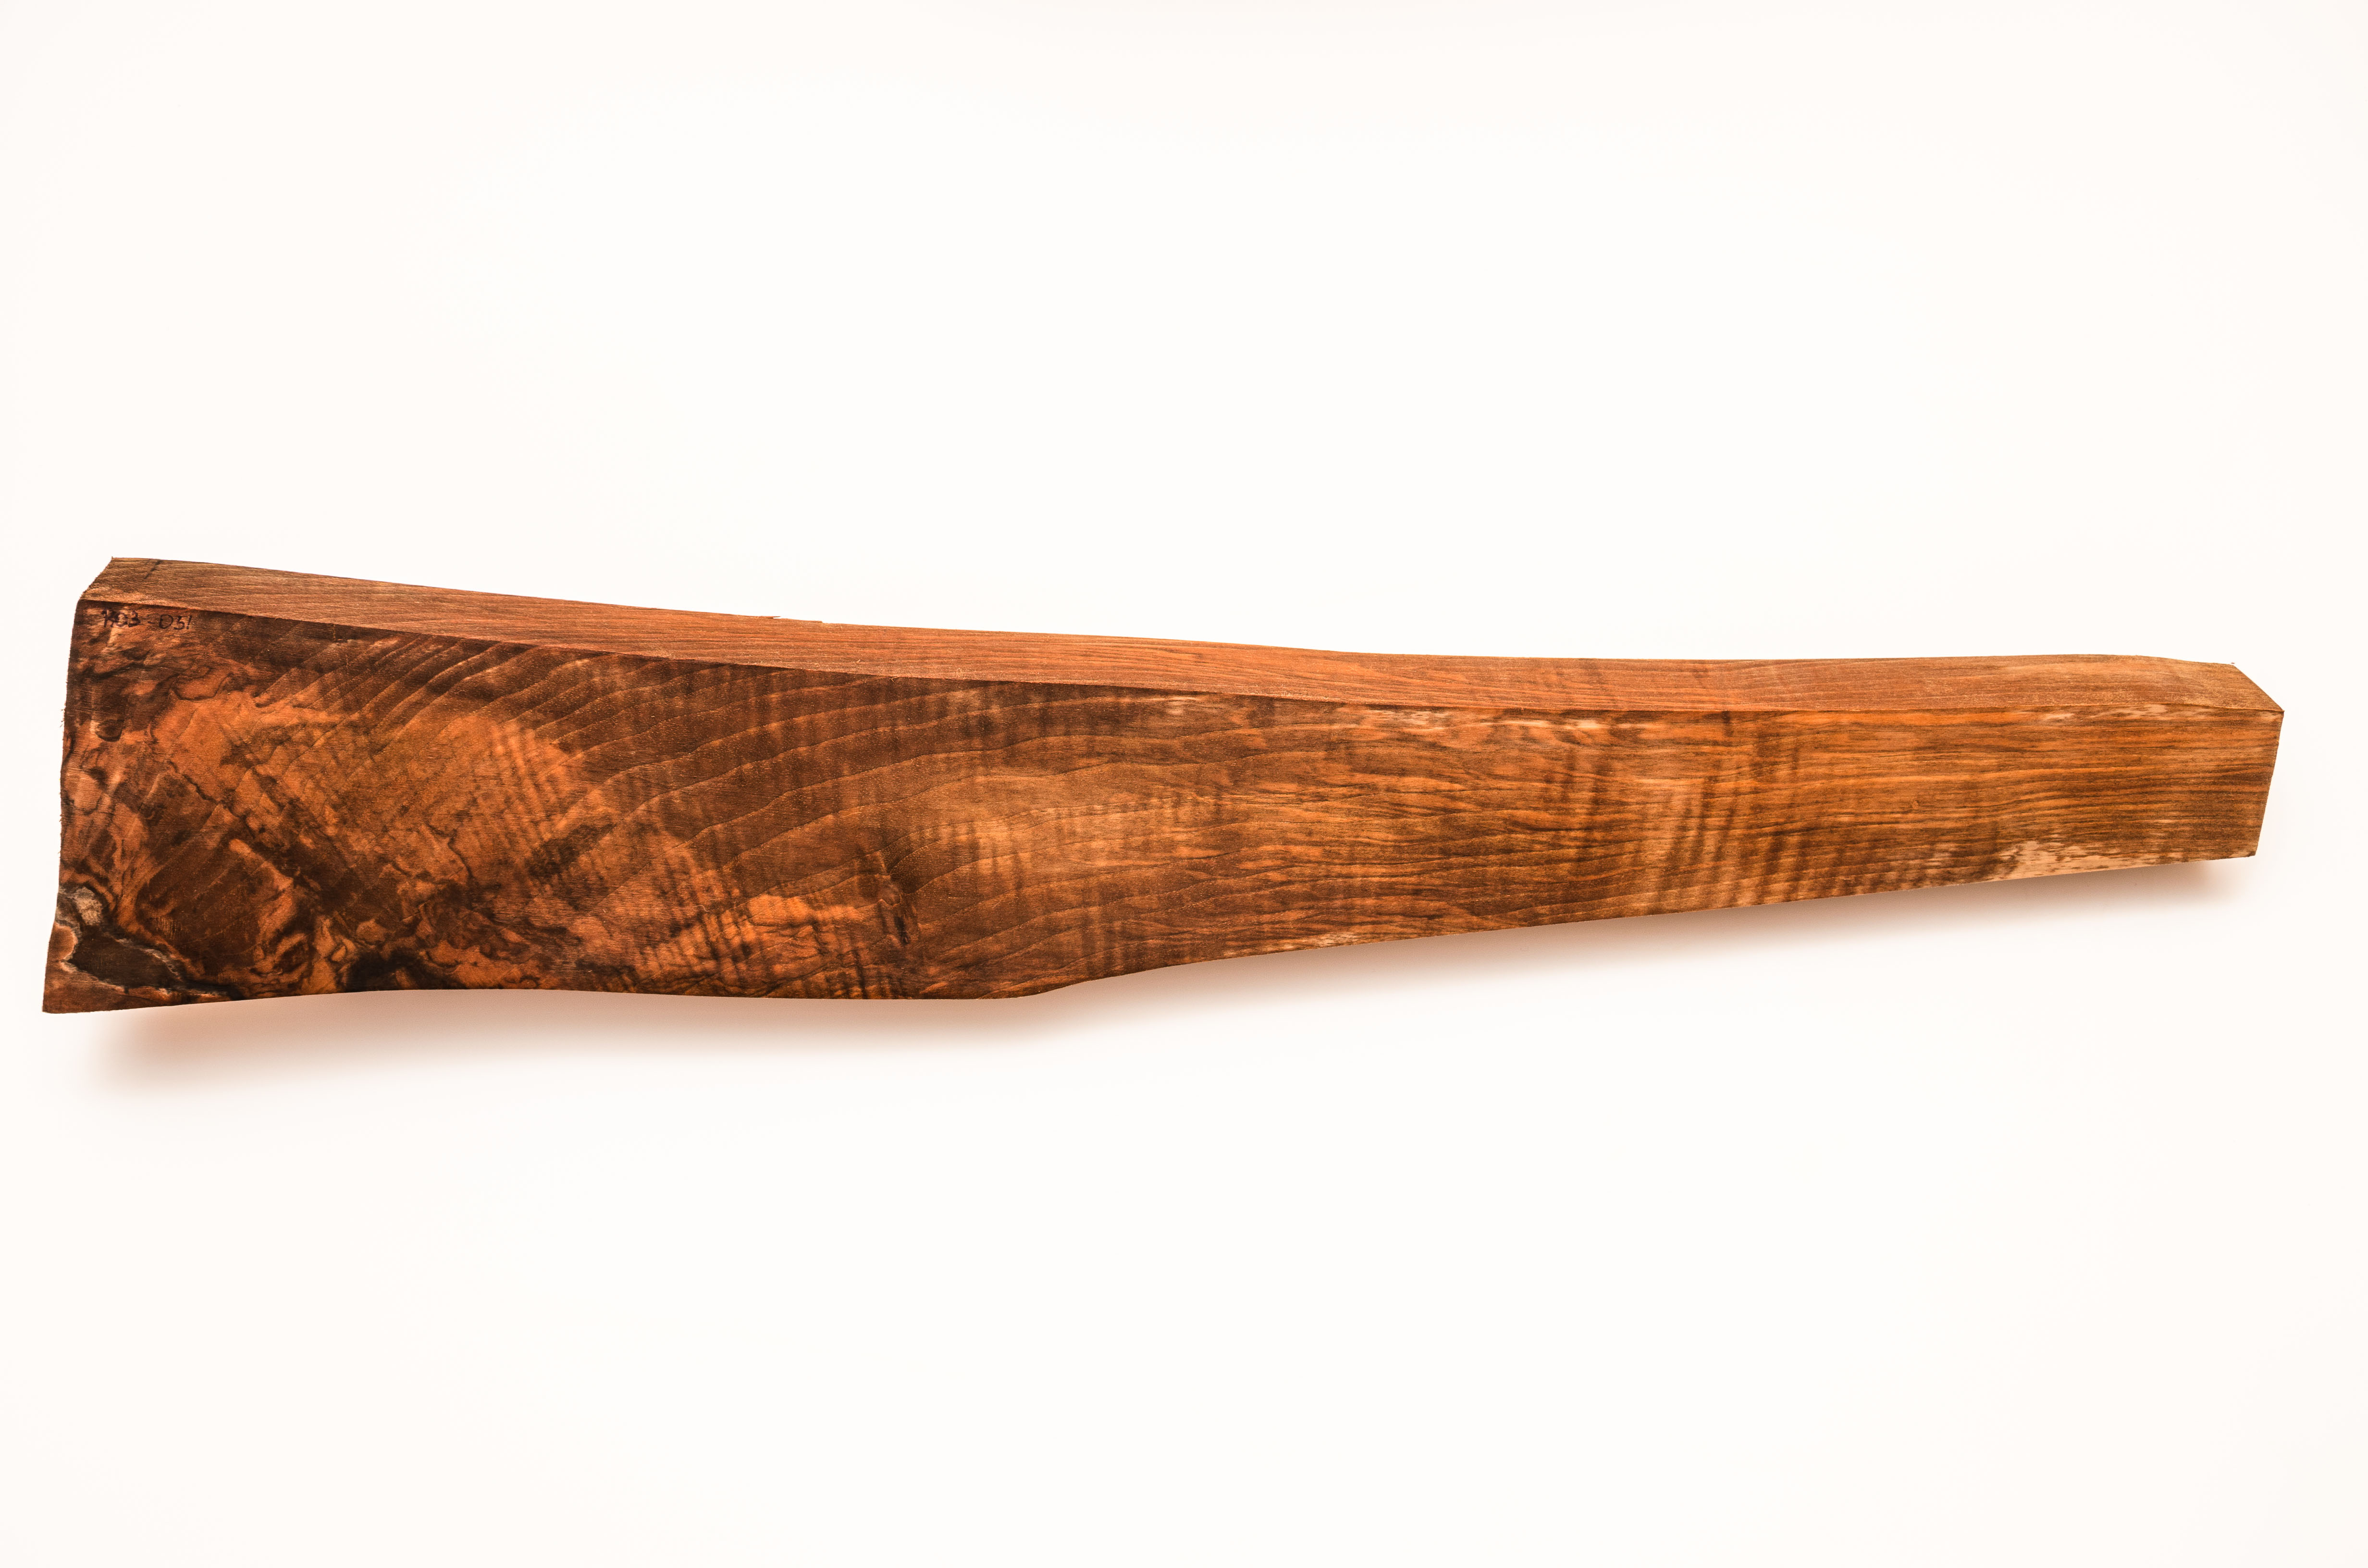 walnut_stock_blanks_for_guns_and_rifles-1407